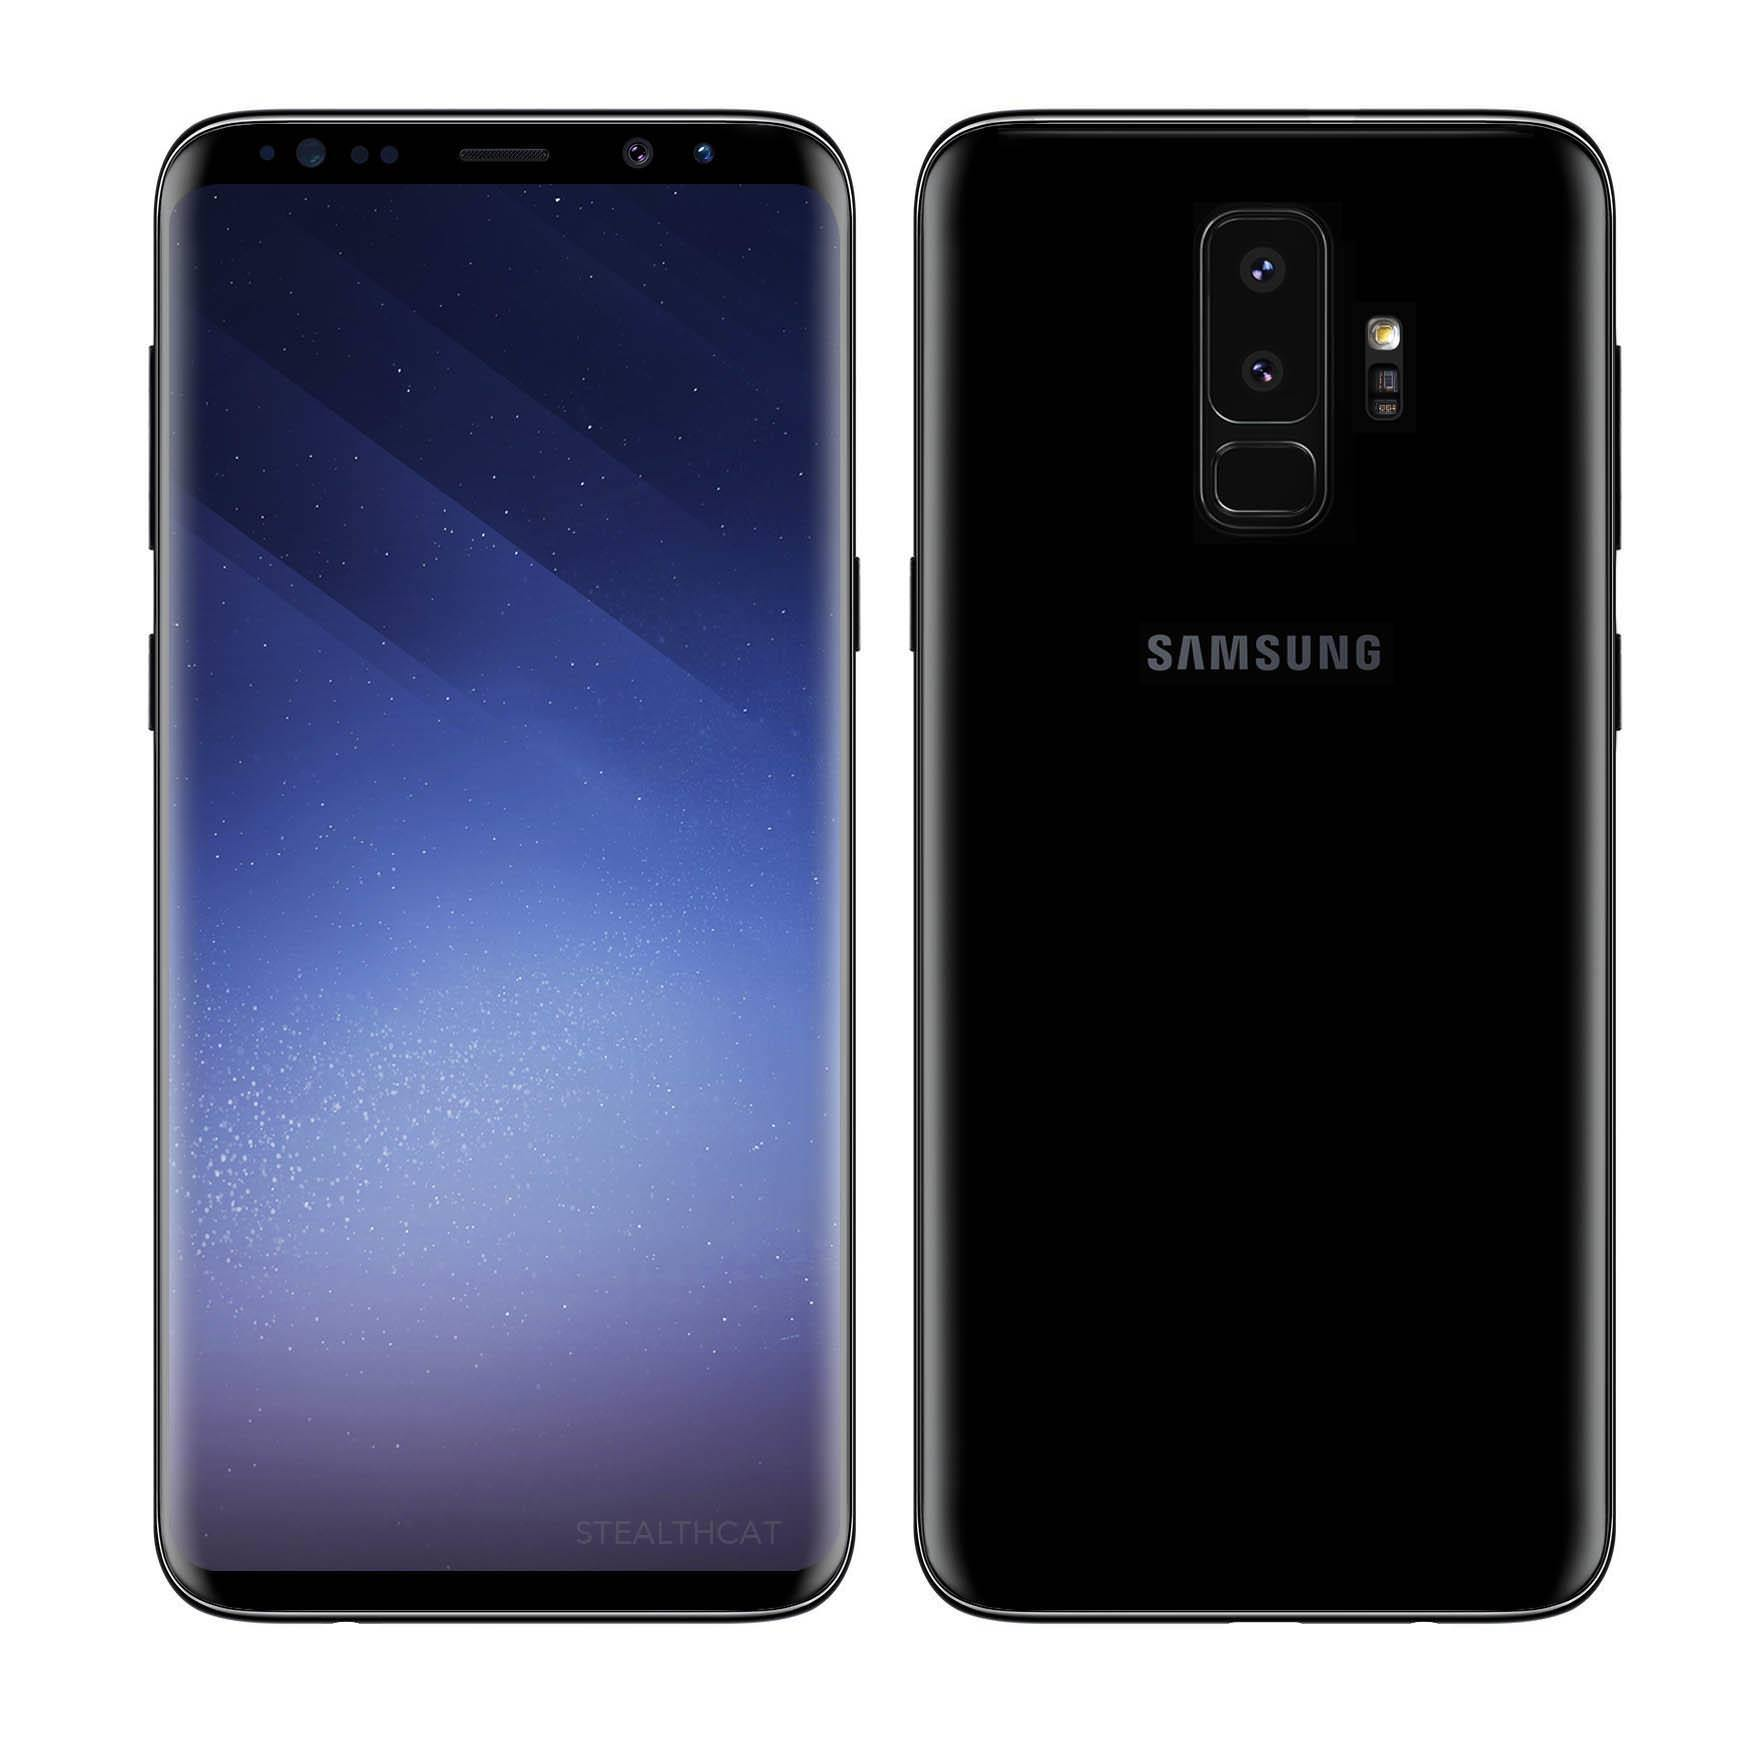 http://bgr.com/2017/12/05/galaxy-s9-plus-design-render/